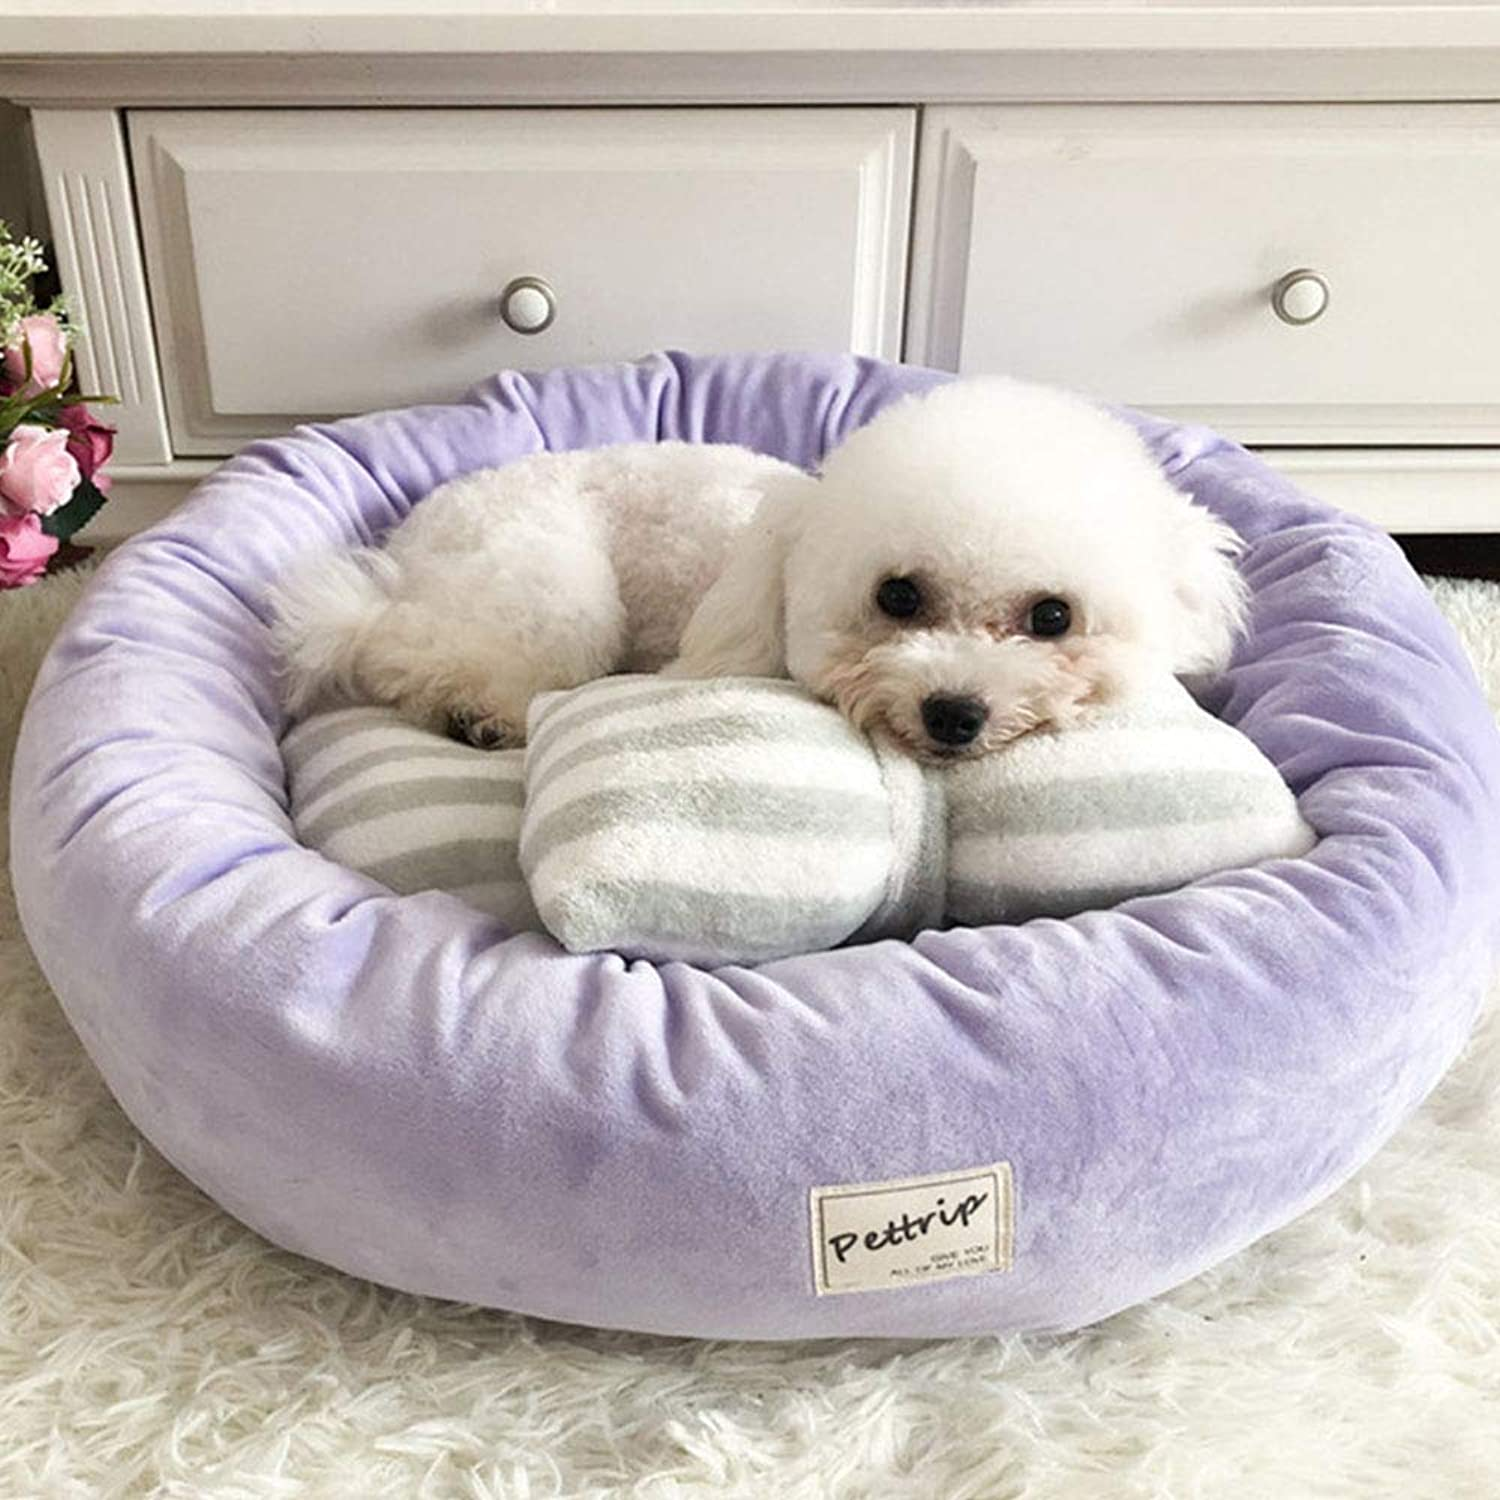 Pet Dog Bed Mats Round, Puppy Pads Warm Velvet Soft Lounger Sofa for Kitten Puppy with Pillow Four Seasons Universal, Purple,S